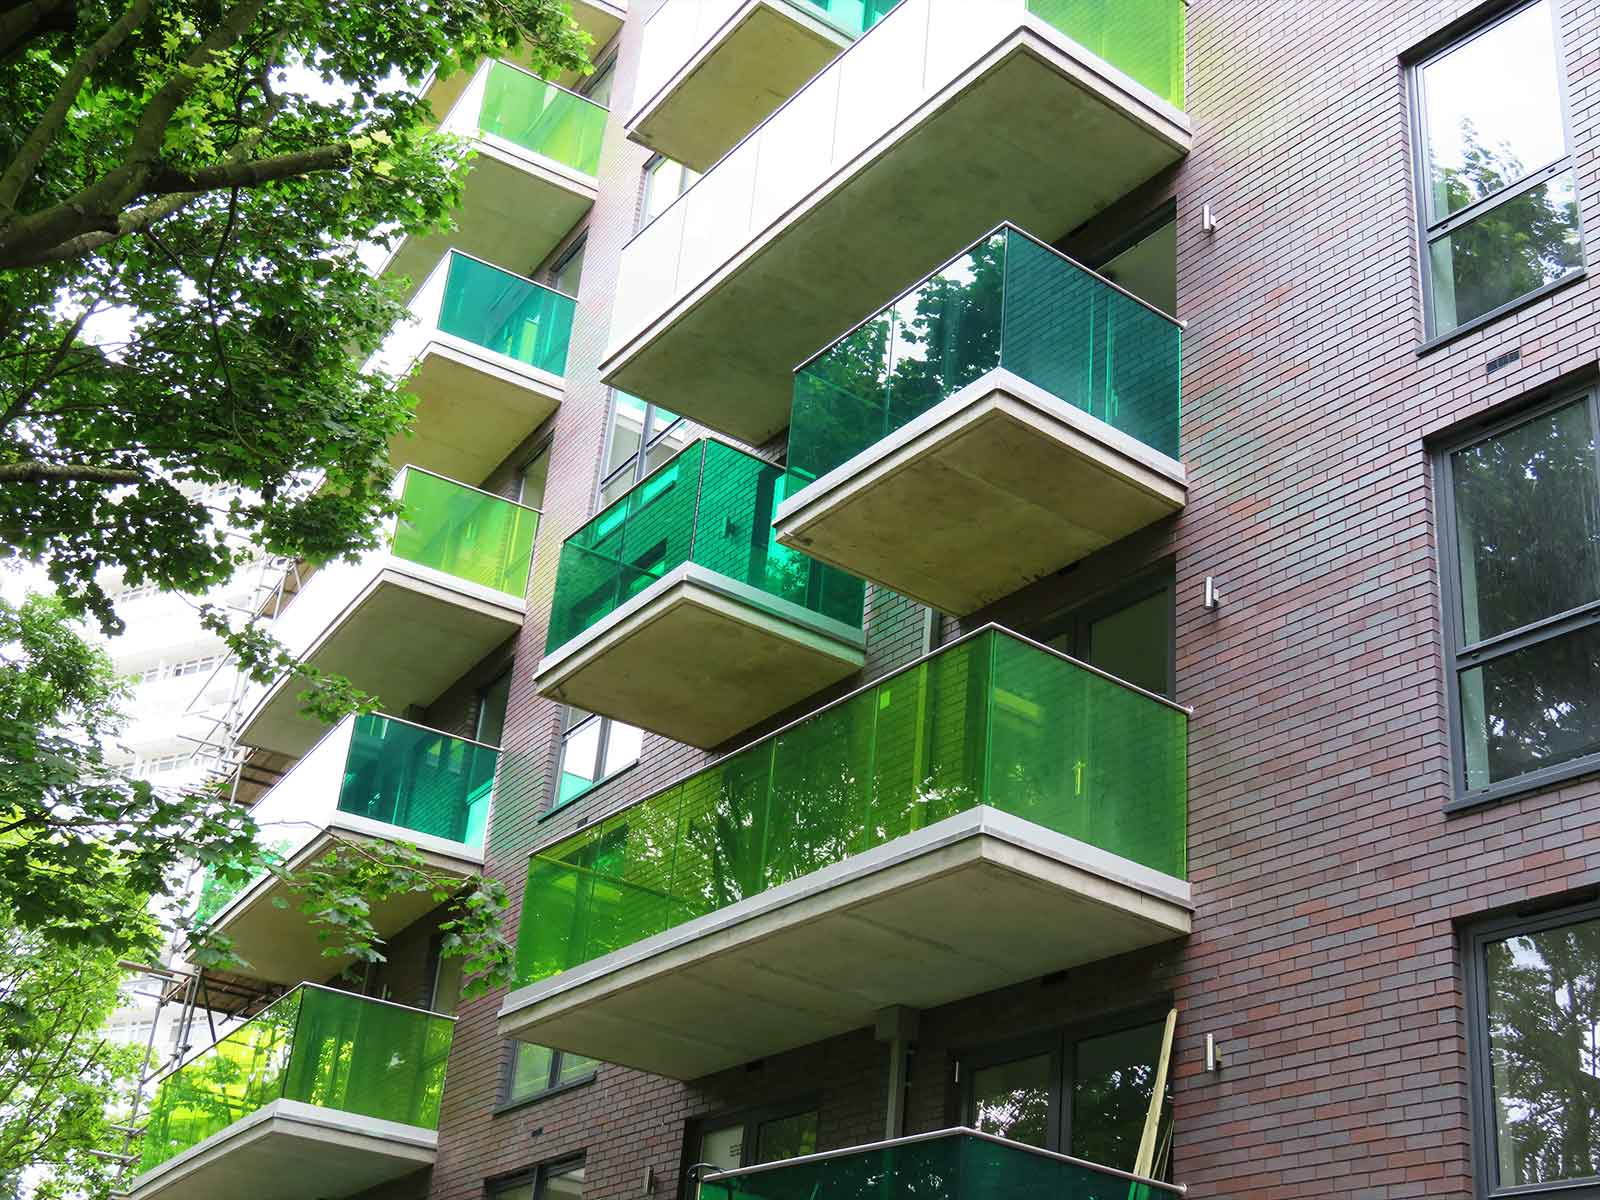 green glass balconies flats battersea